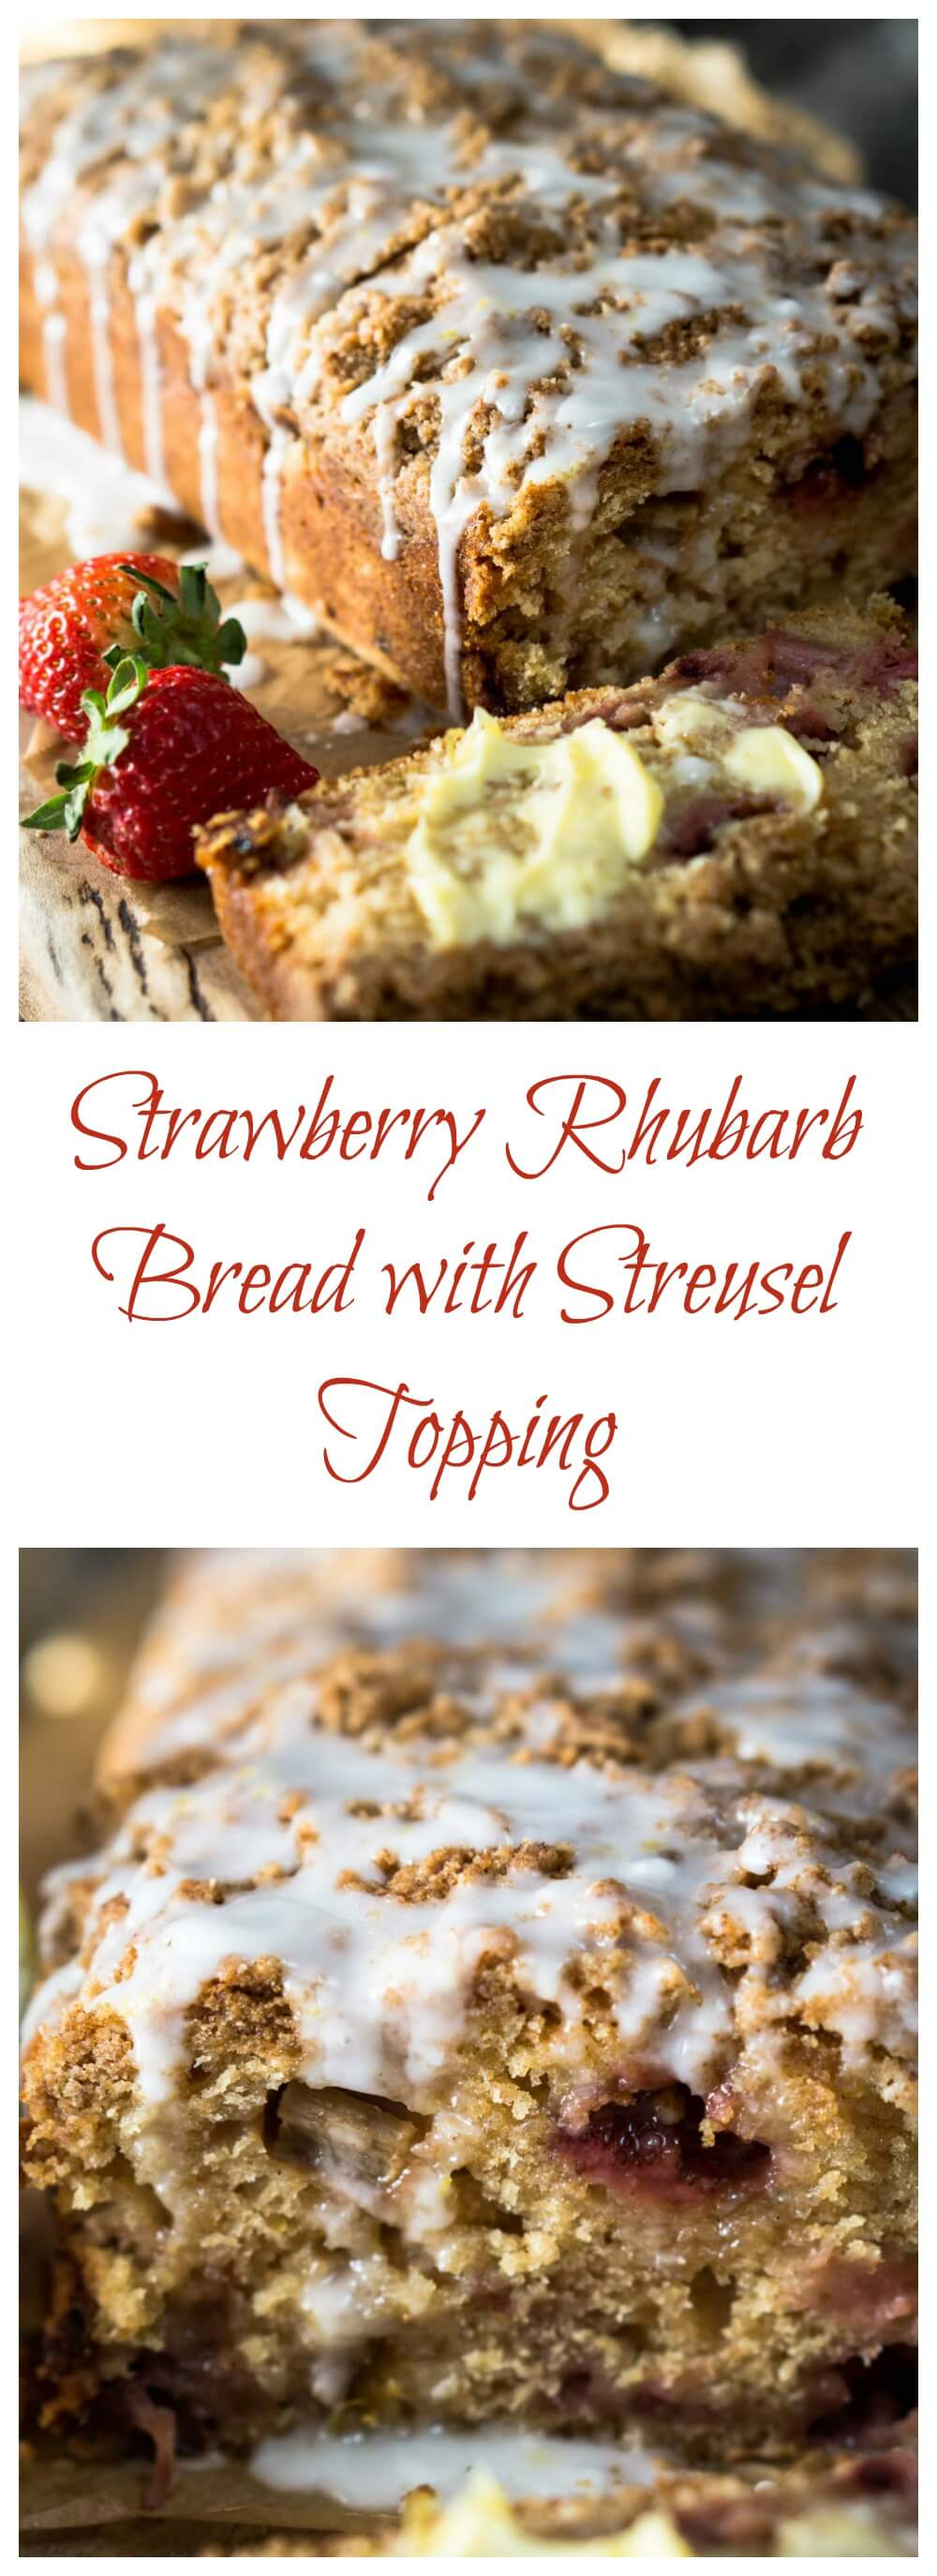 Strawberry Rhubarb Bread with Streusel Topping could easily pass for cake. It is sweet, tart and crunchy all at the same time. HostessAtHeart.com